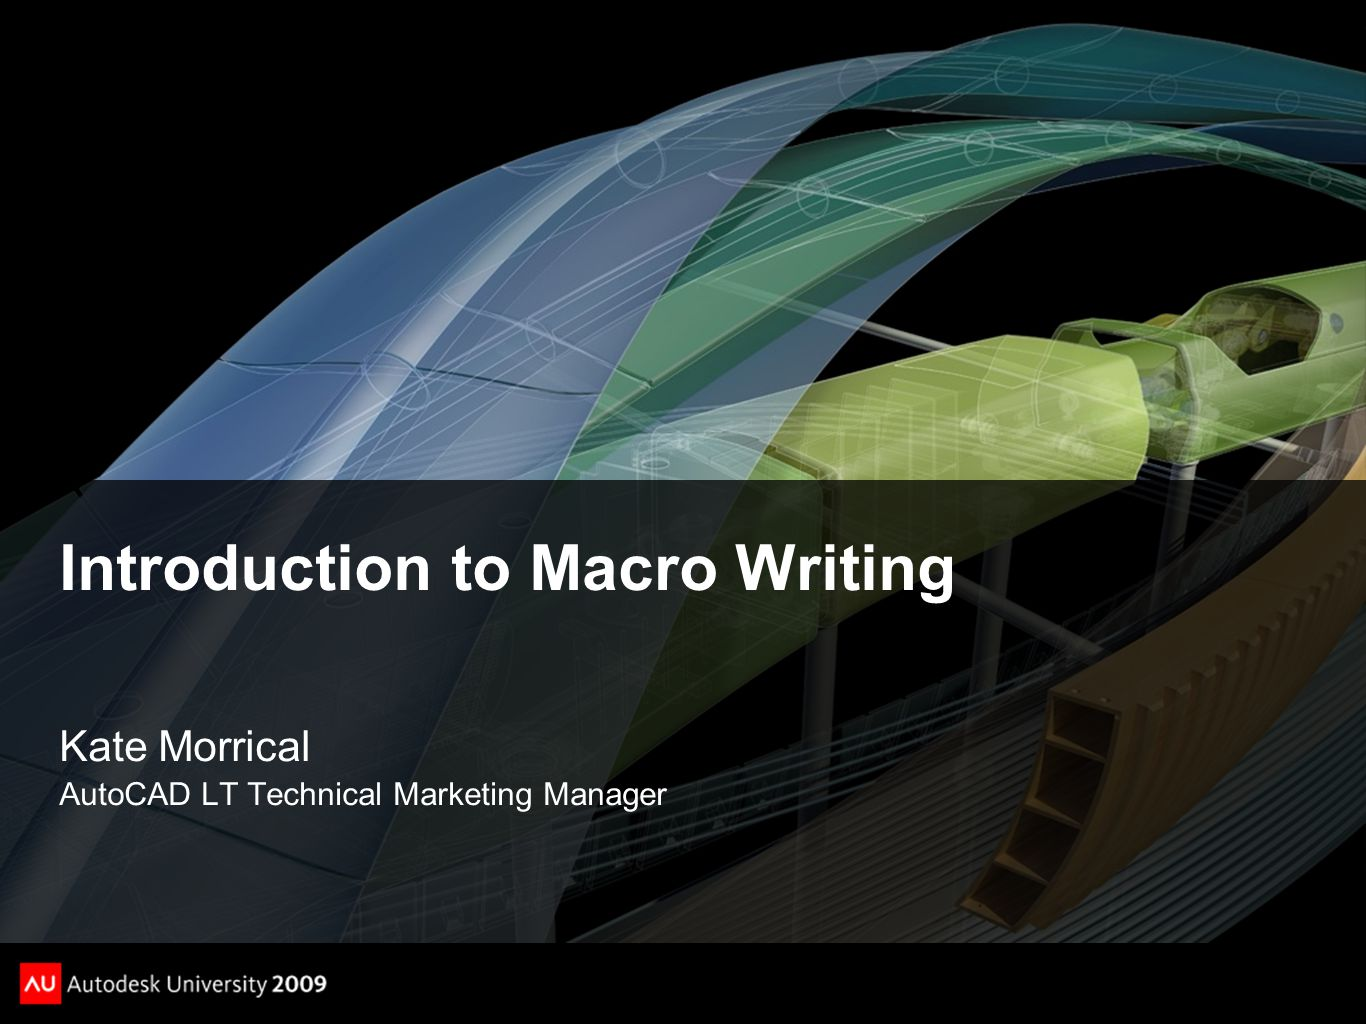 Introduction to Macro Writing